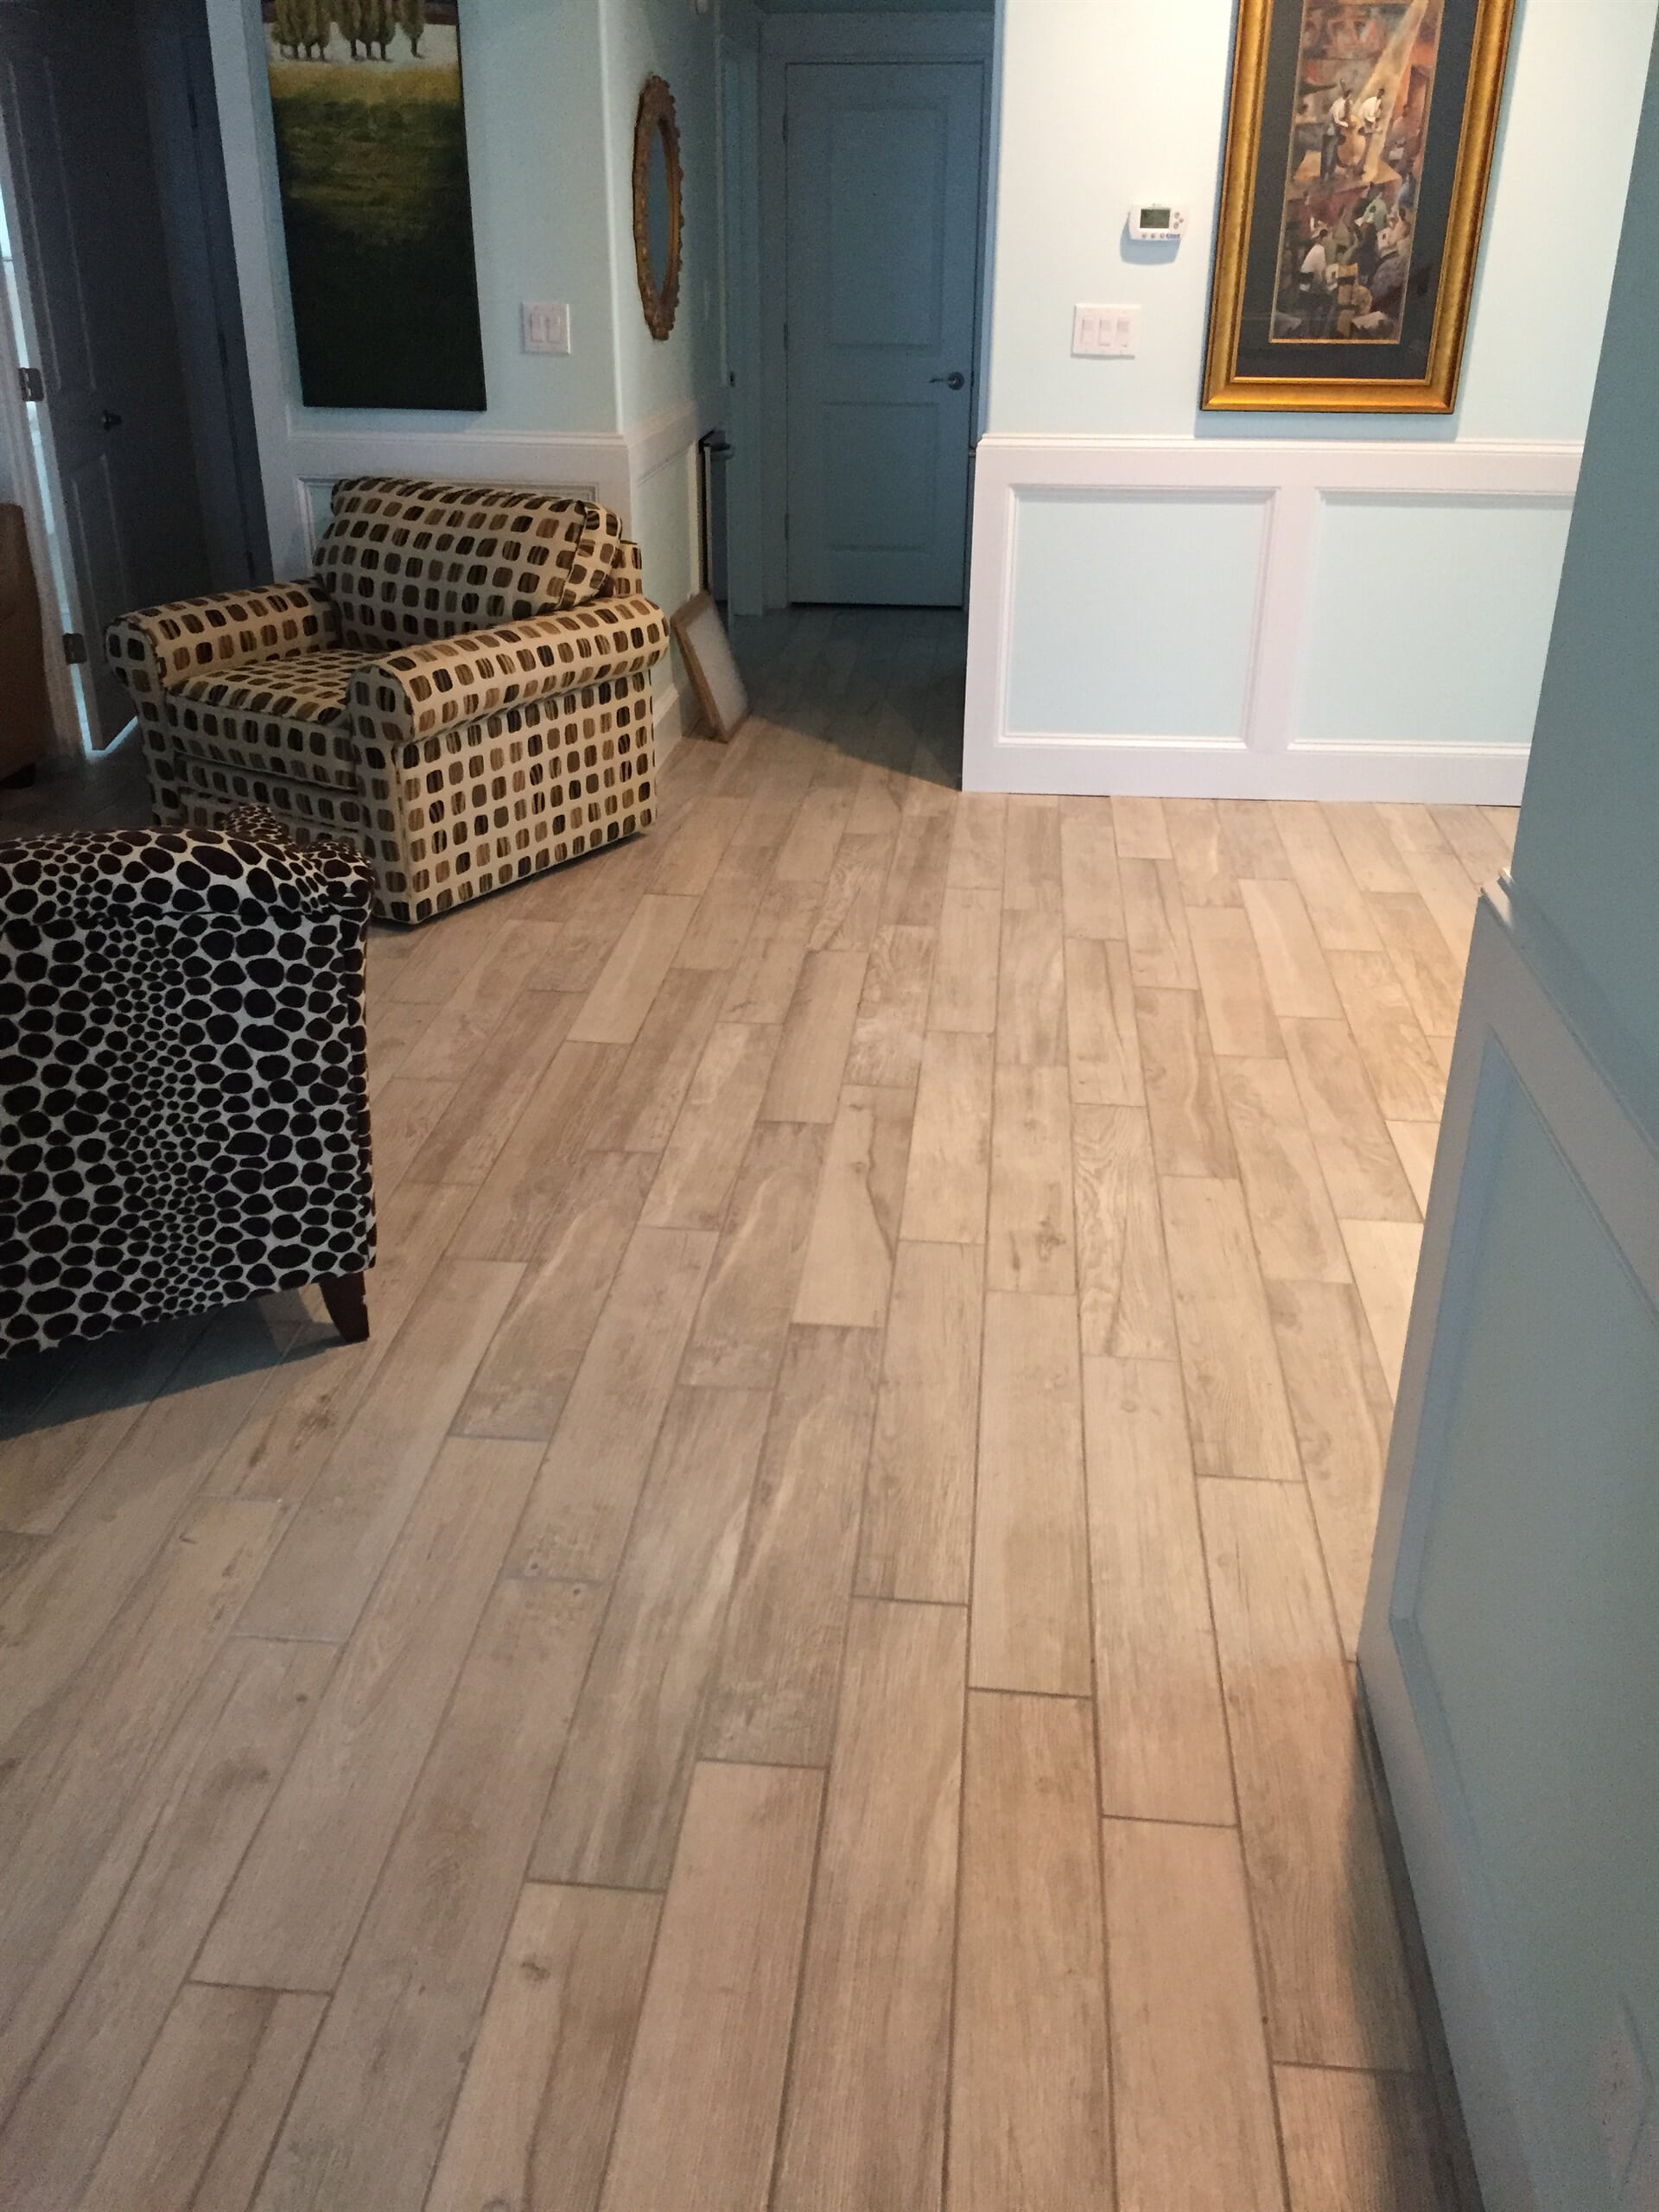 Narrow wood look tiles in Spanish Fort, AL from G & J Tile & Floor Covering